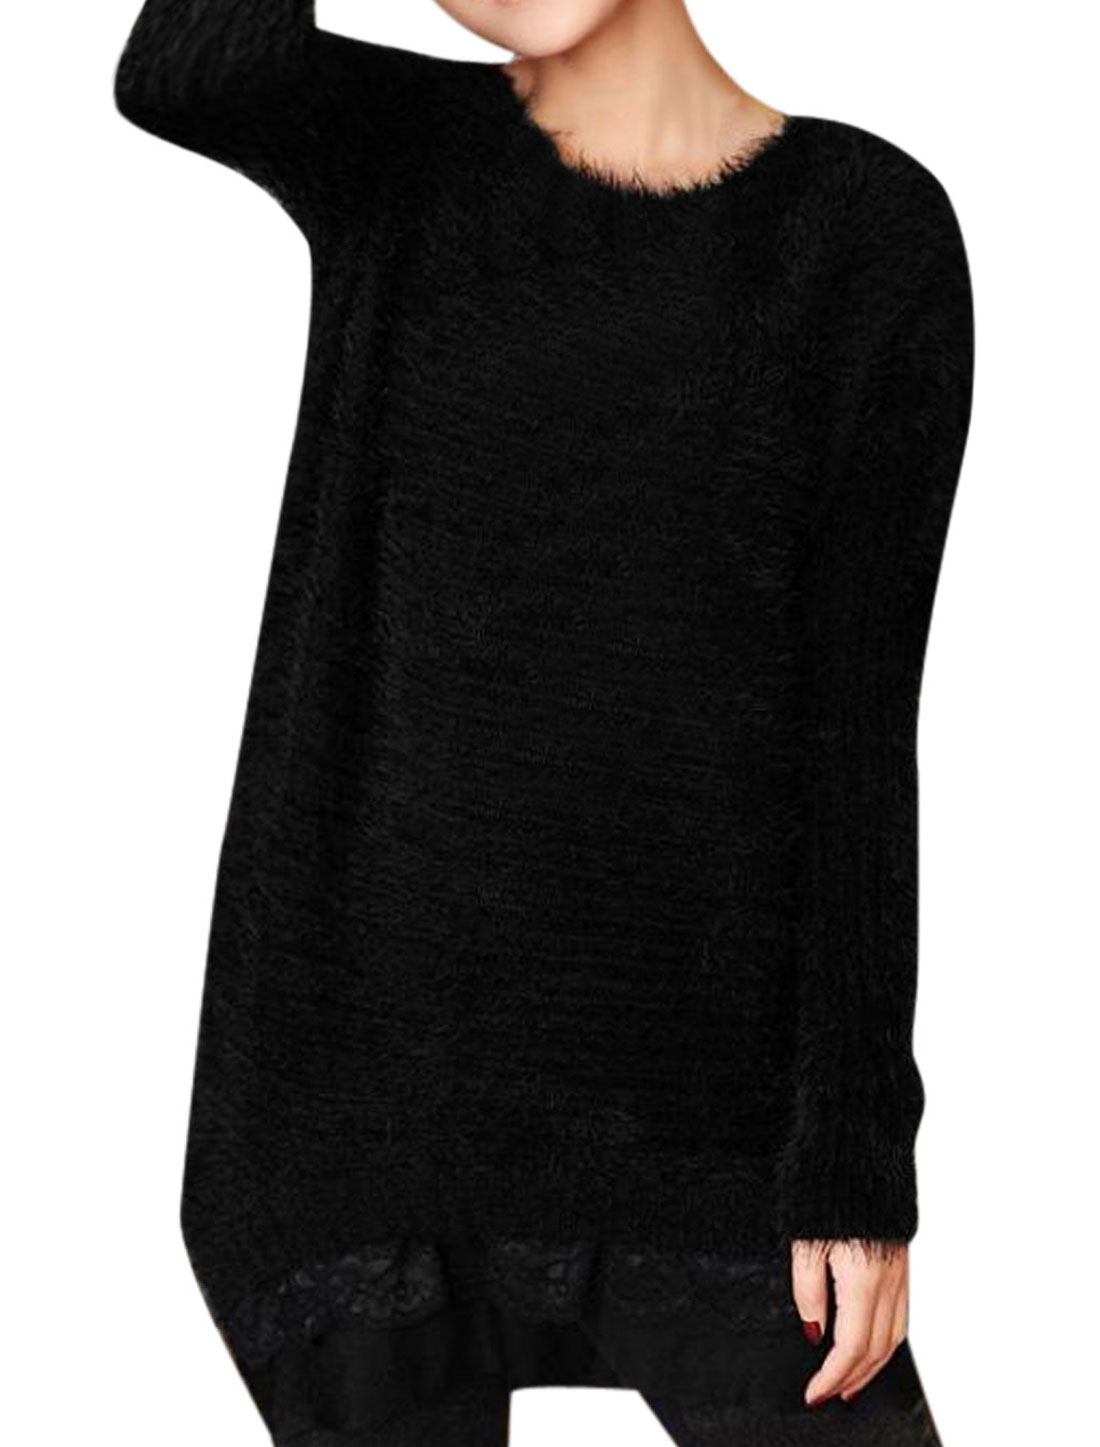 Women Round Neck Long Sleeve Lace Panel Hem Casual Tunic Sweater Black XS